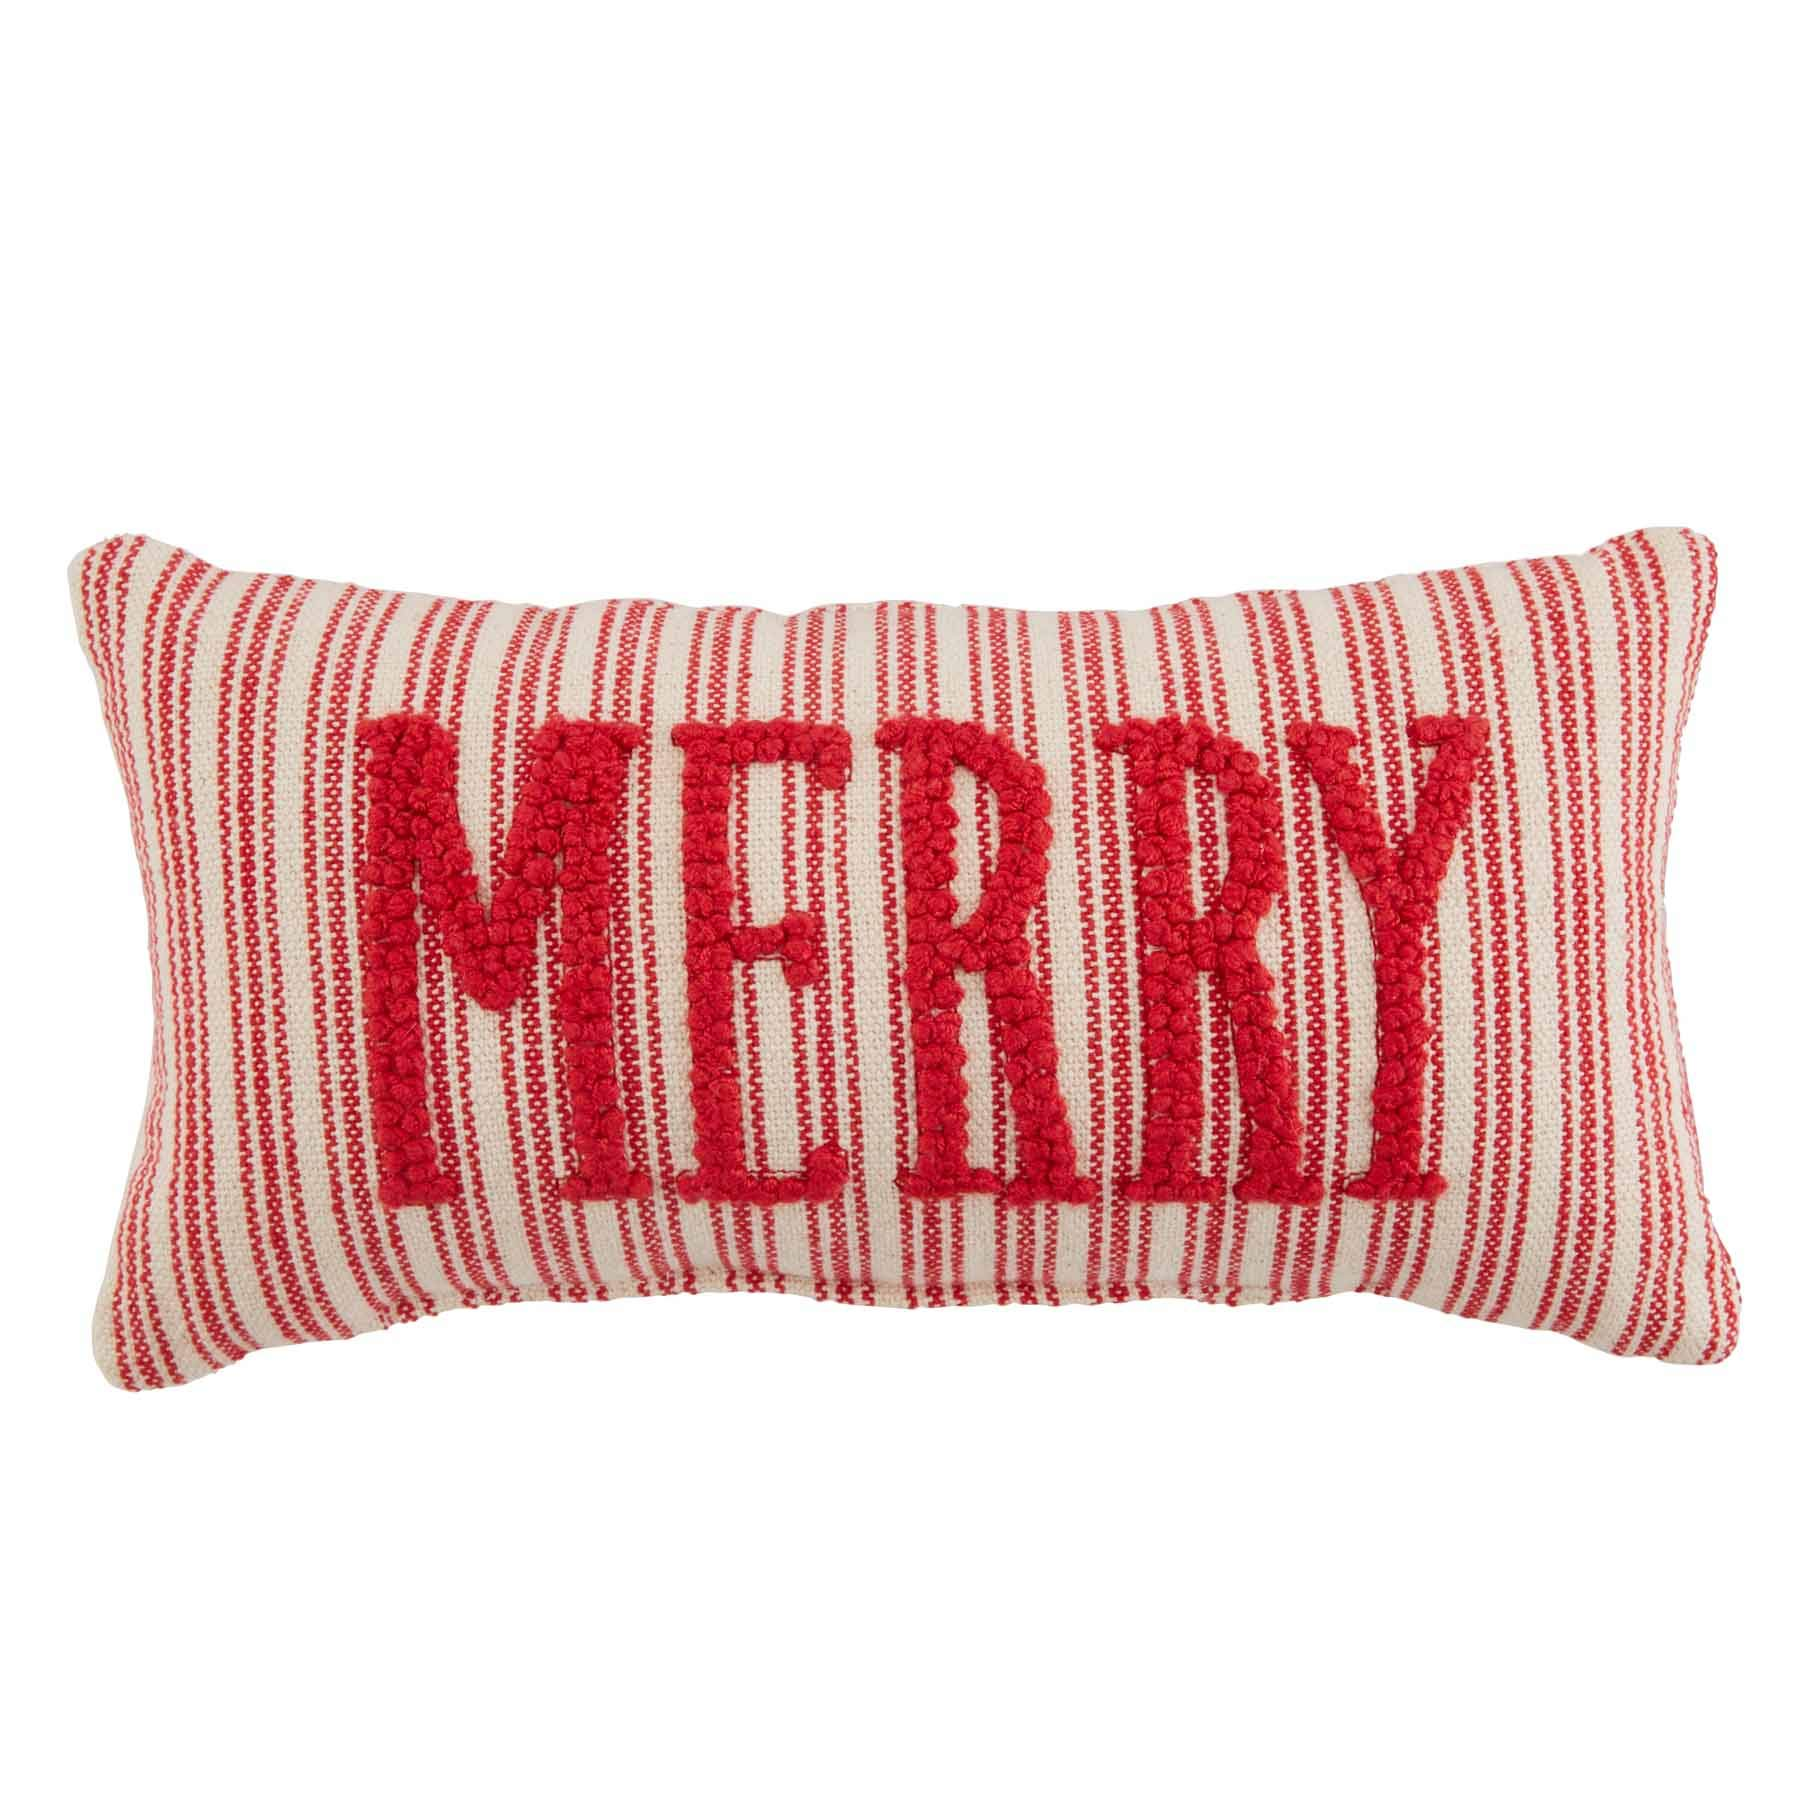 Mud Pie Merry Small Knotted Pillow Red White Ebay